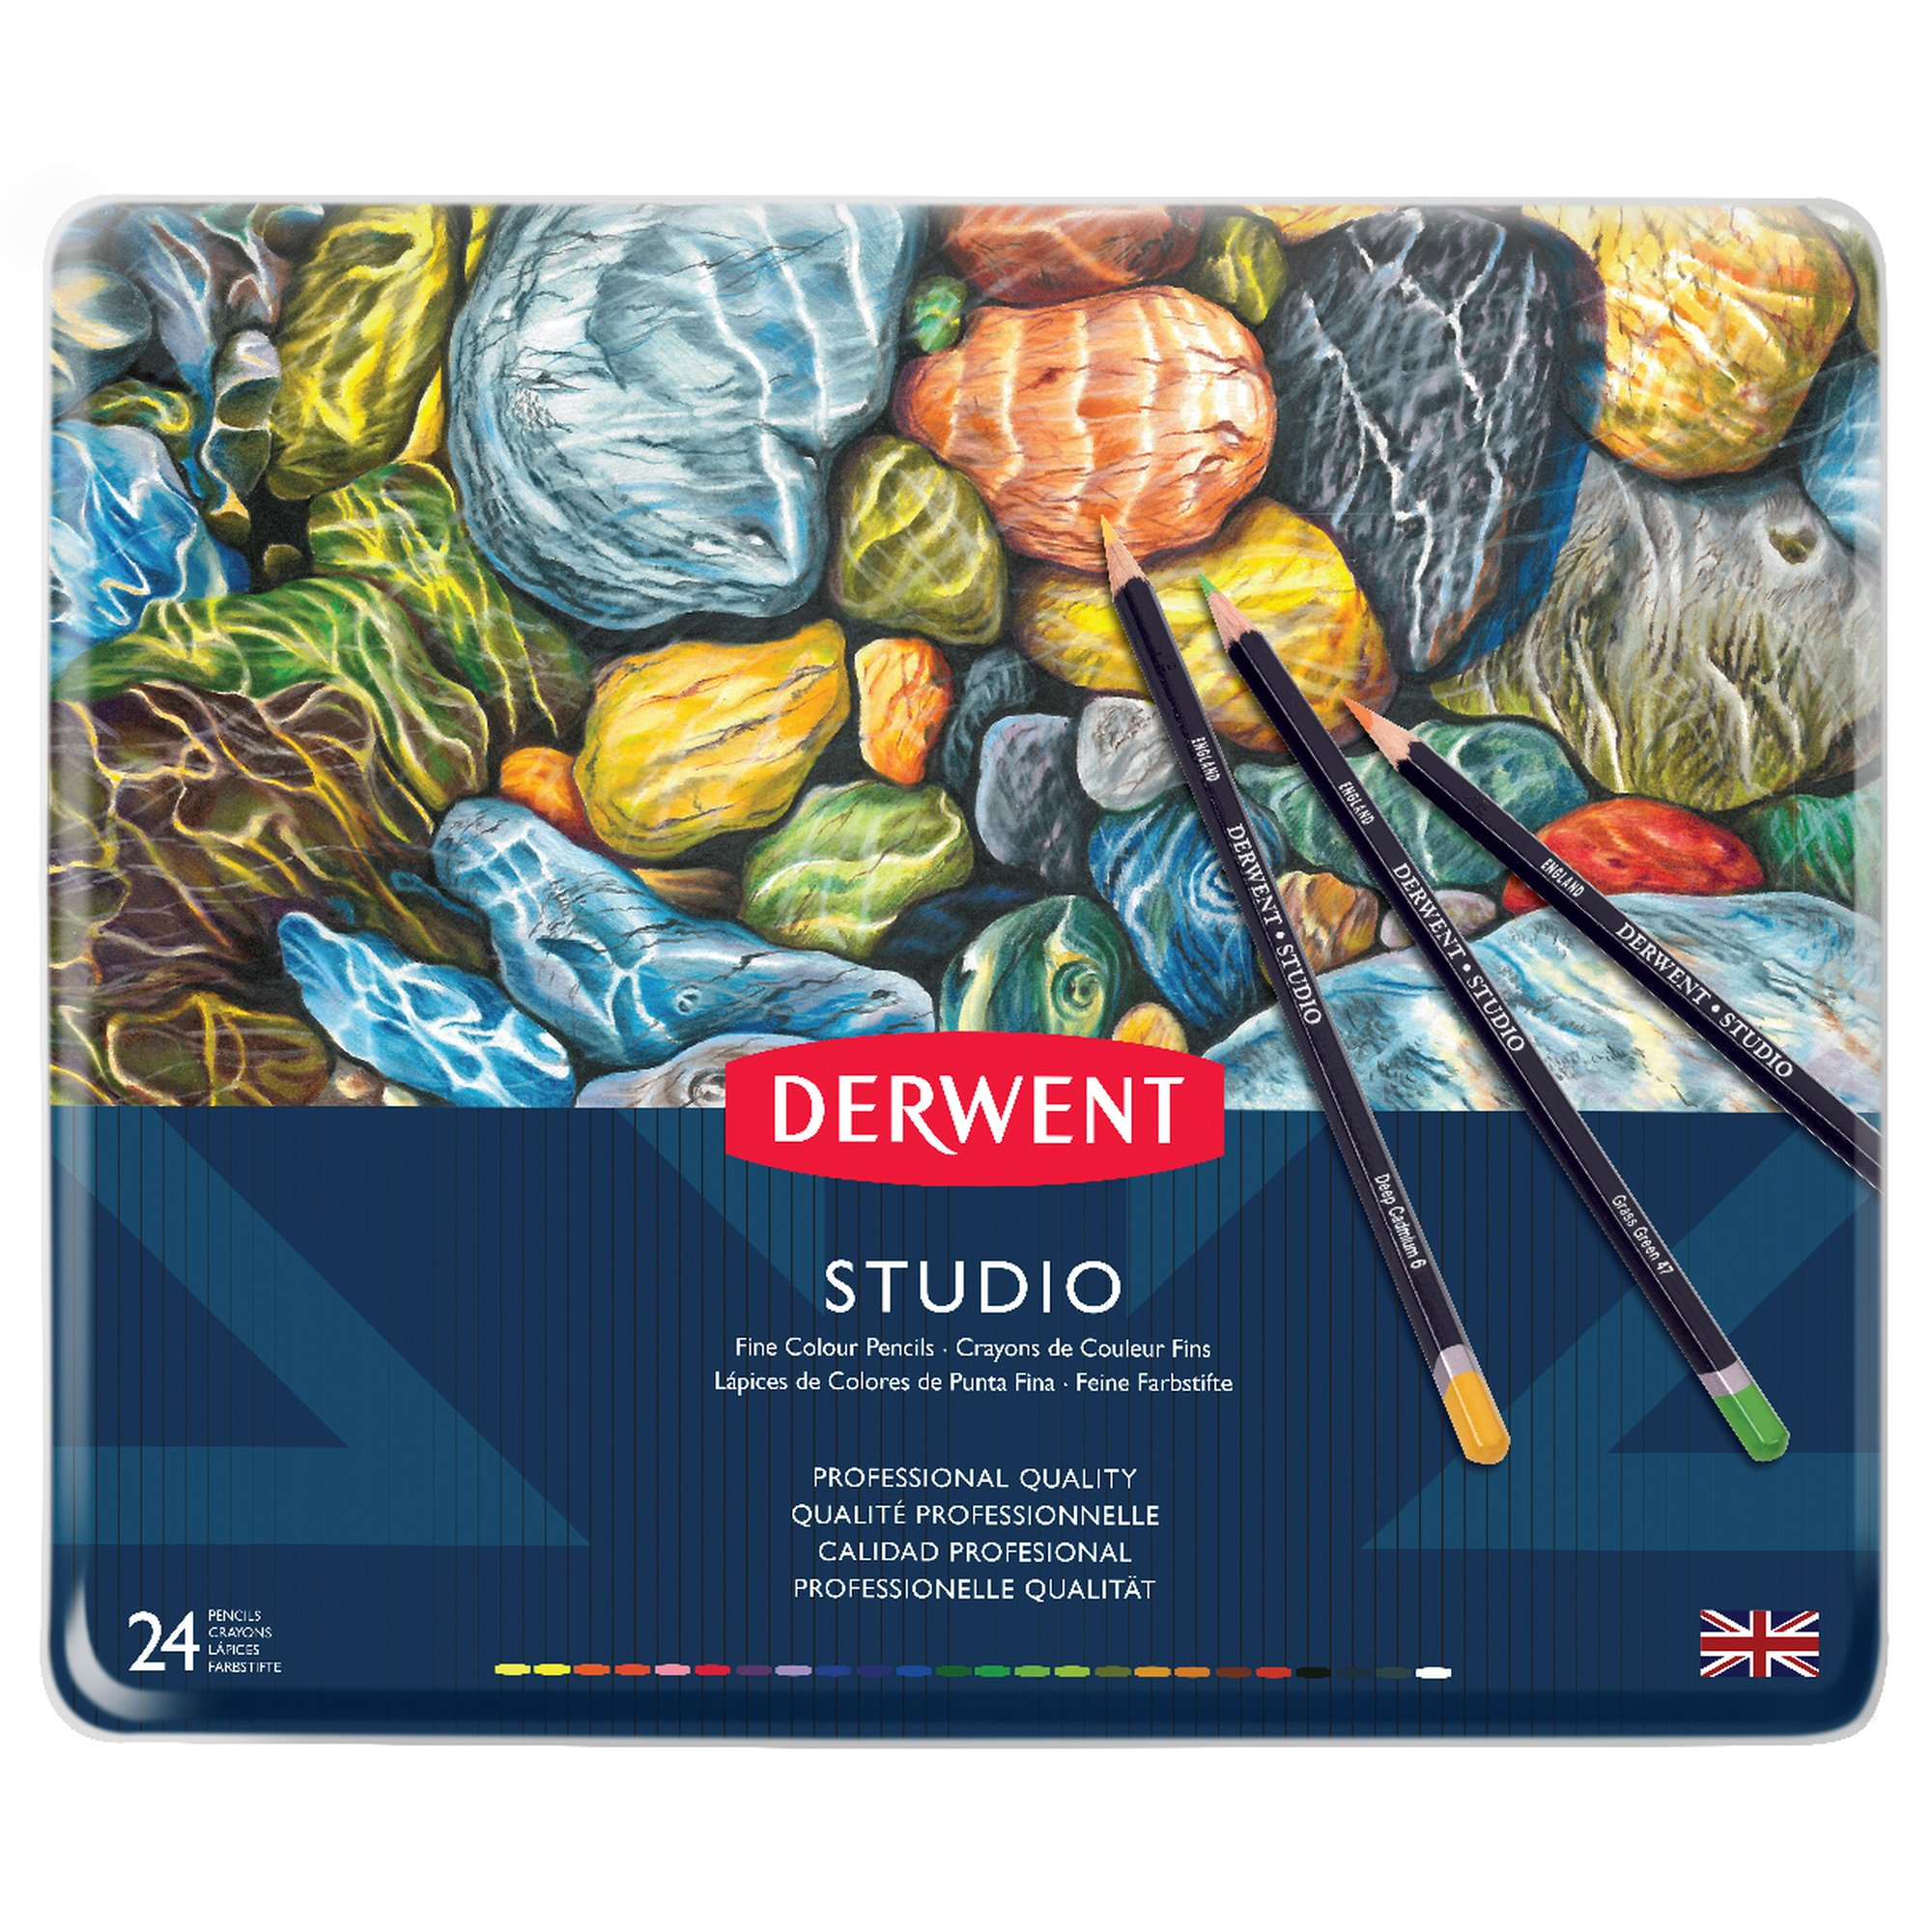 Derwent Studio 24 Fine Colour Pencils Tin - Pens And Pencils